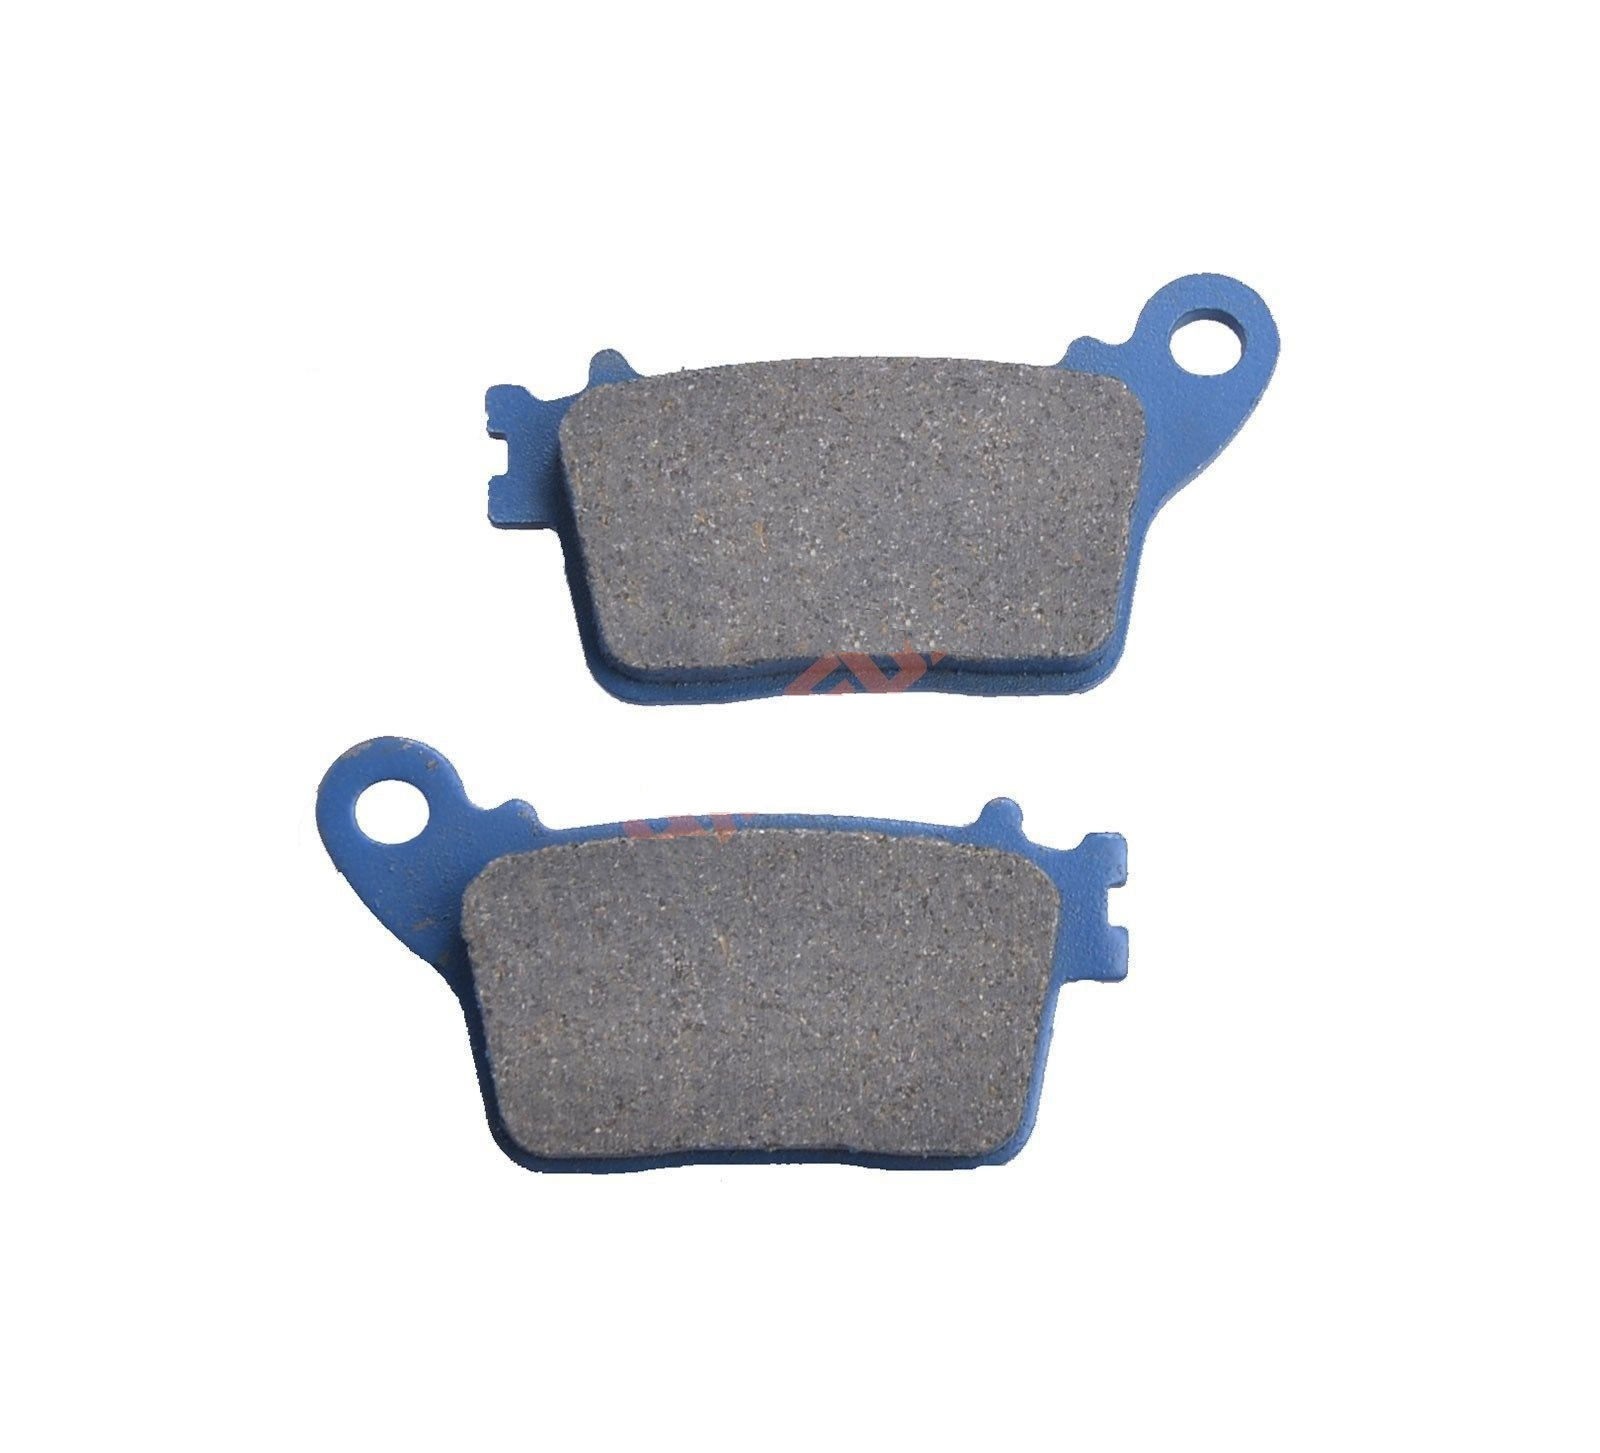 Rear Carbon Disc Brake Pads Suzuki GSXR 600/750 11-17 GSXR 1000